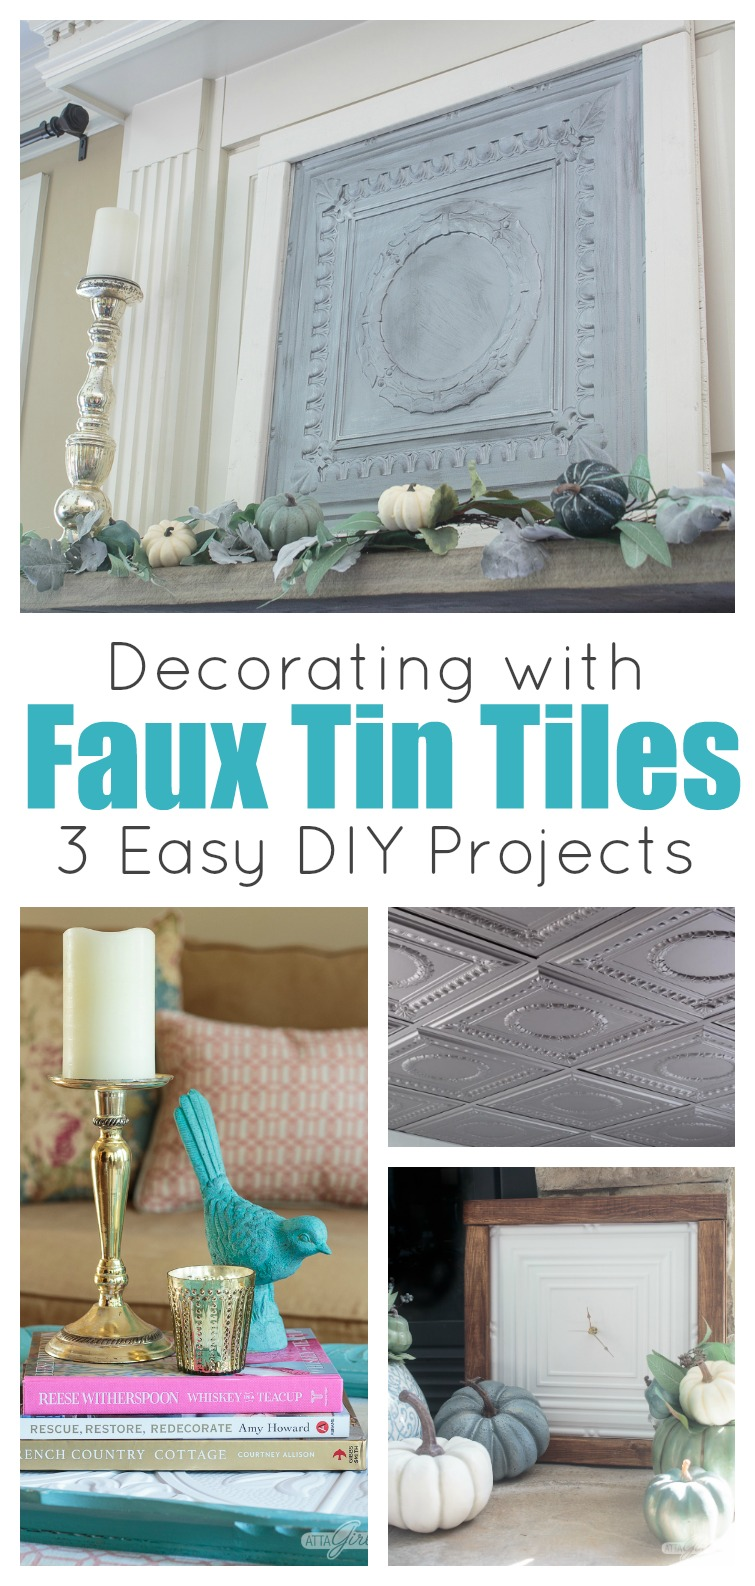 Collage Photo Led Decorating With Faux Tin Tiles 3 Easy Diy Projects Showing Oversized